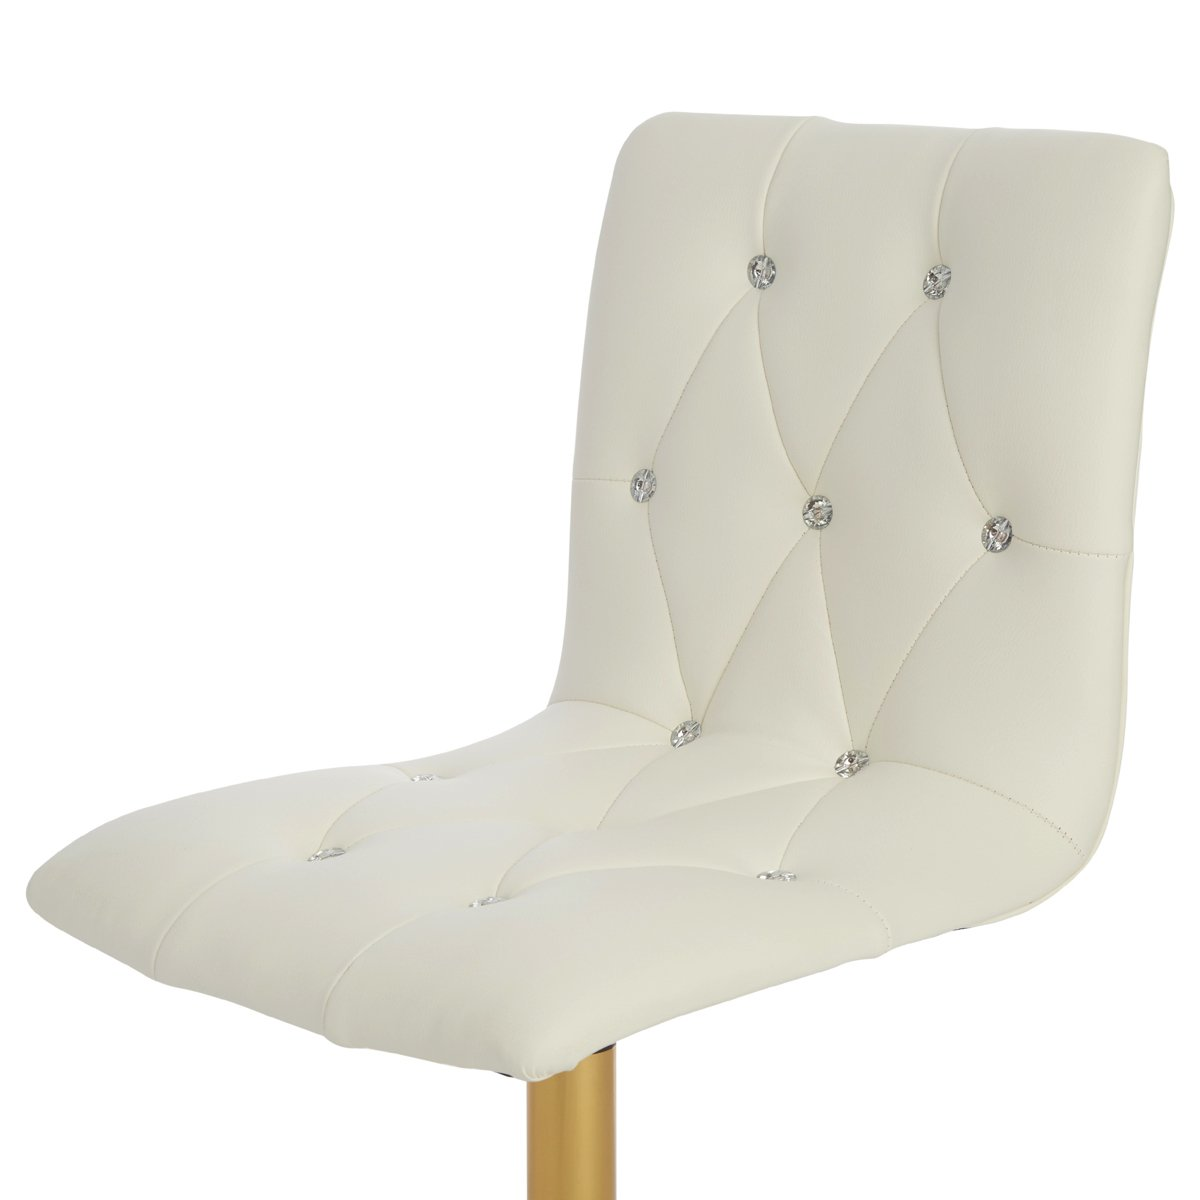 Tufted Vanity Chair Evelyn Diamond Tufted Vanity Chair